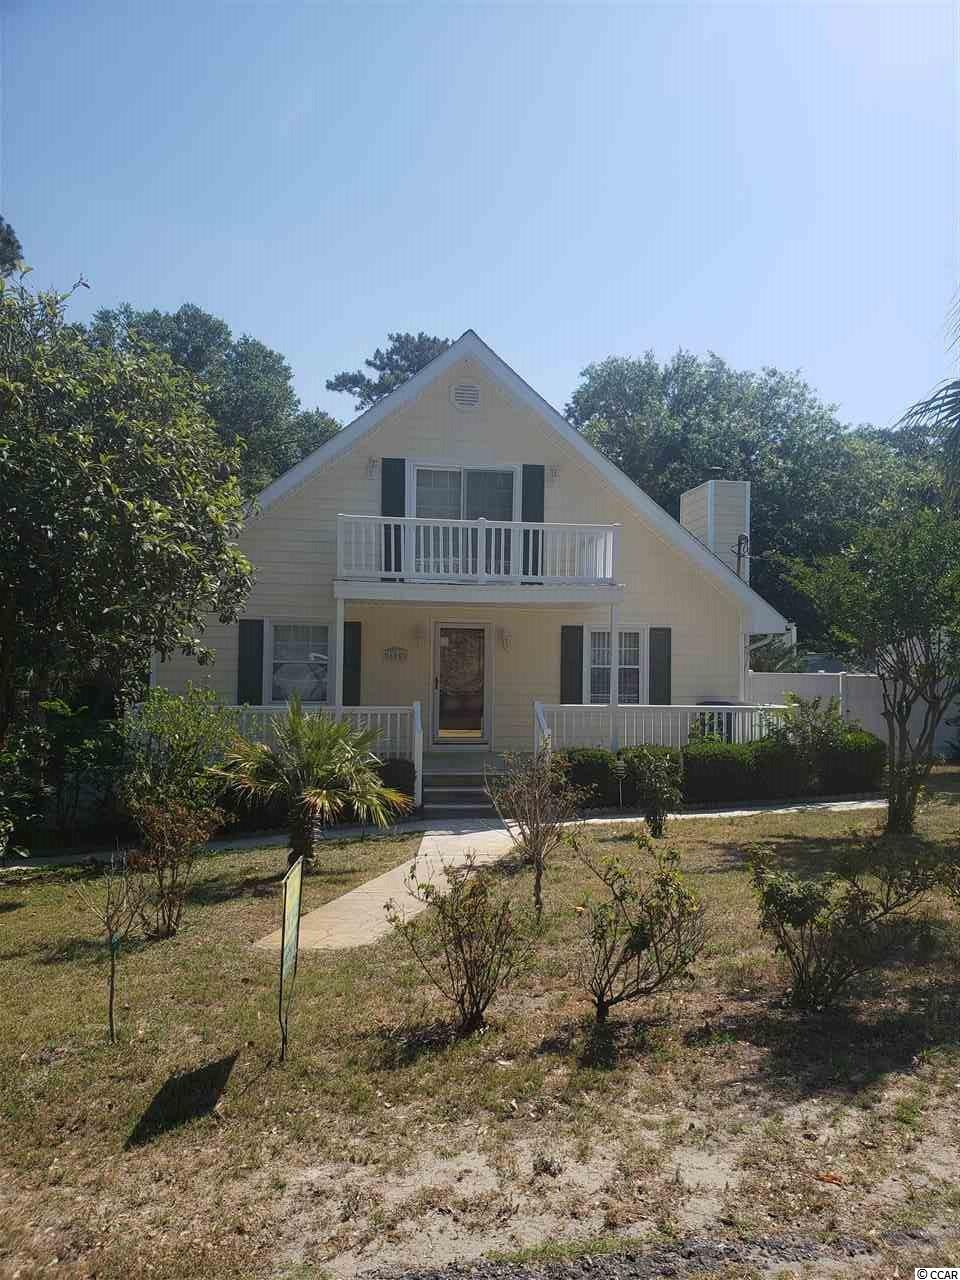 3BR / 3BA with full basement on large lot walking distance to the beach! Home features open living room, kitchen, dining, master suite and extra full bath on main floor. Two bedrooms upstairs share a bath. Huge 3 car garage / storage on bottom level. Nice covered porch on front and 750 SF deck off rear.